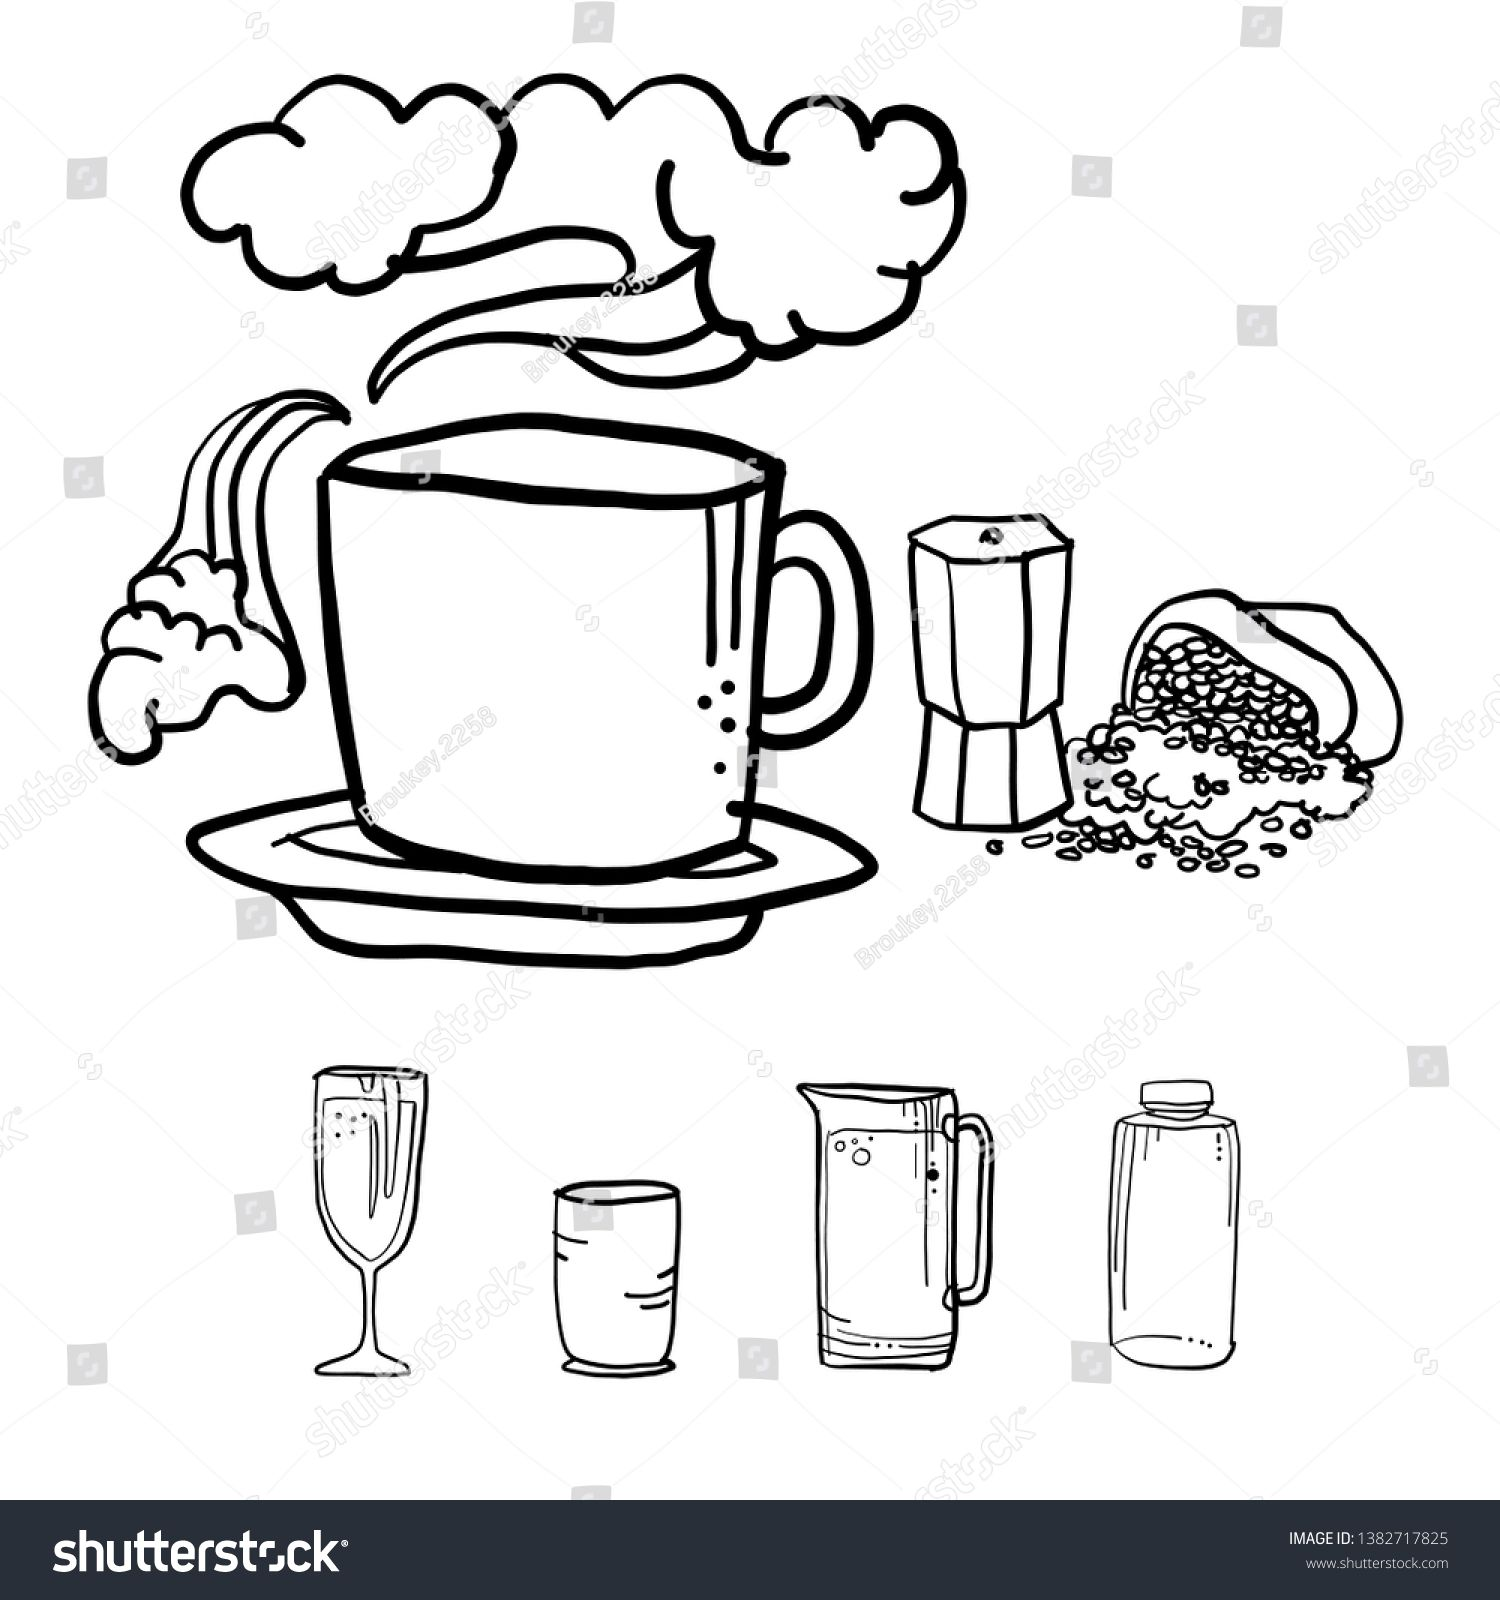 Coffee cup with kitchenware, drawing vector in doodle style